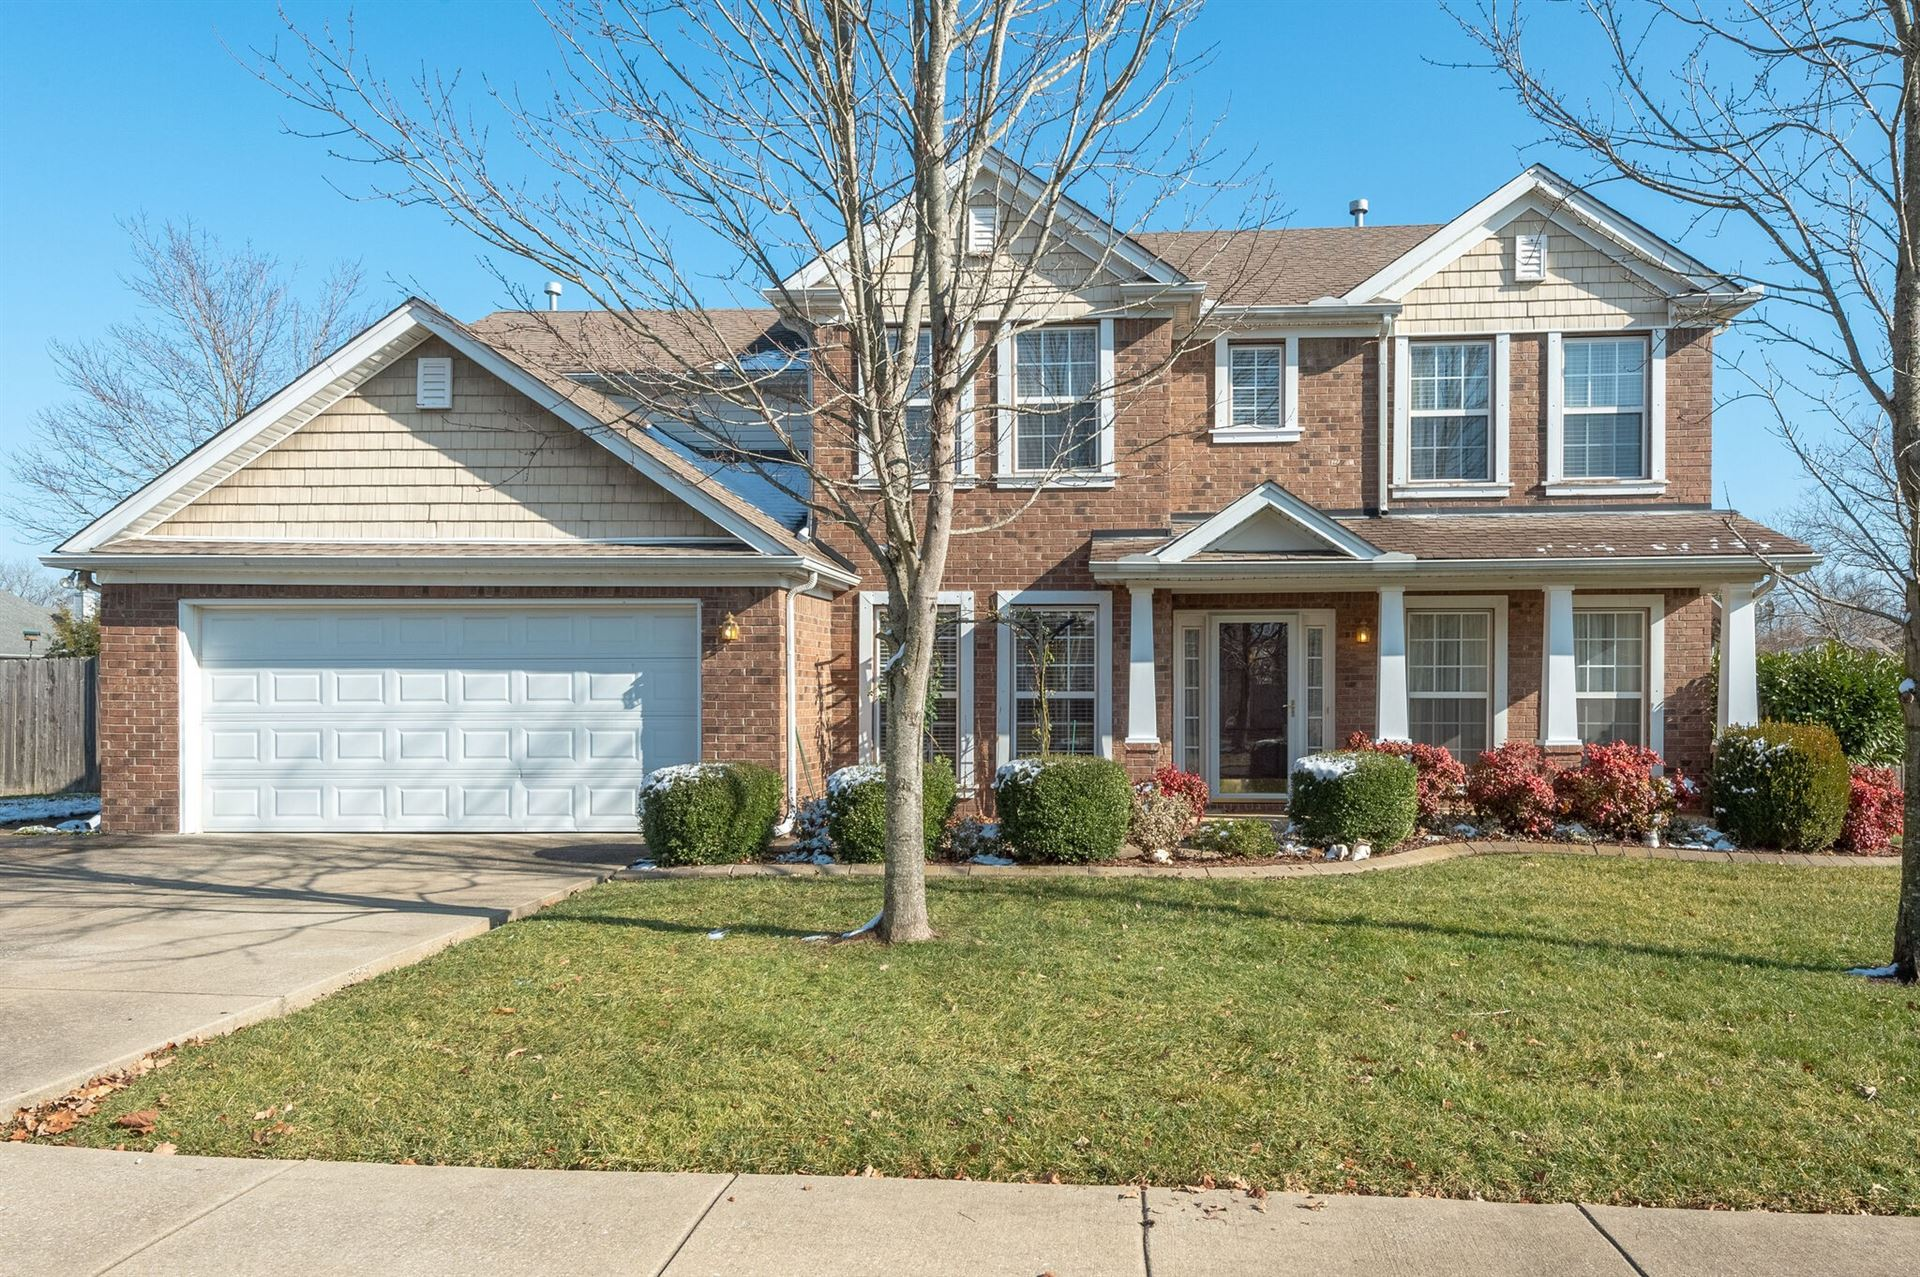 Photo for 1719 Emma Cir, Spring Hill, TN 37174 (MLS # 2220165)